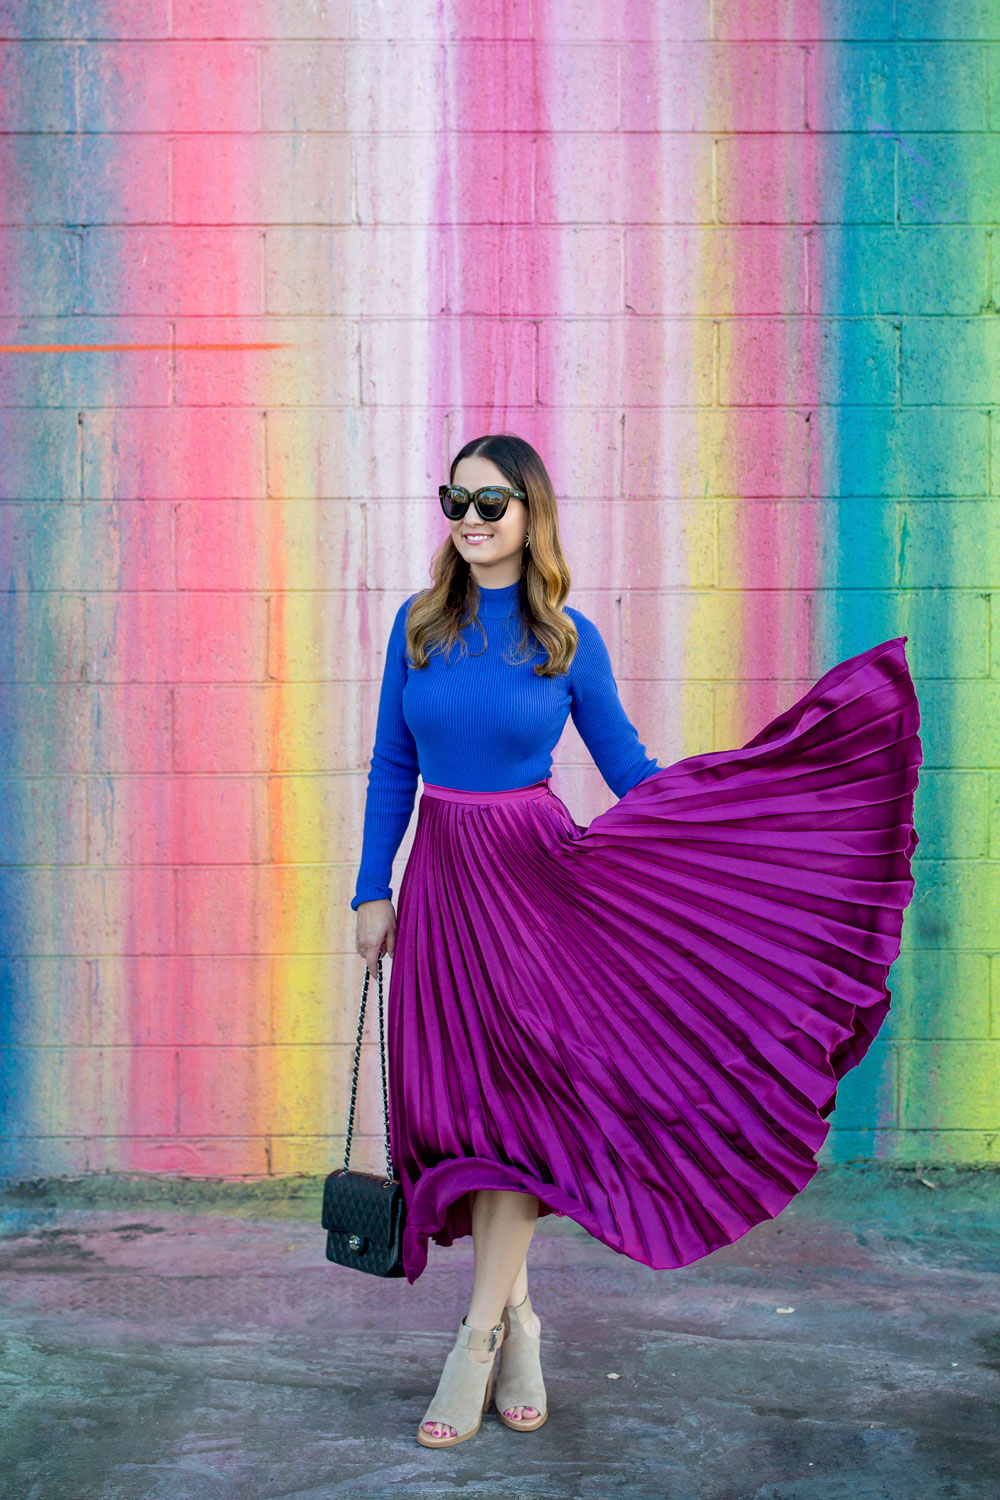 Jennifer Lake Style Charade flicking a ASOS purple pleated midi skirt, cobalt blue sweater bodysuit and Chanel quilted flap bag at a dripping paint wall in Los Angeles